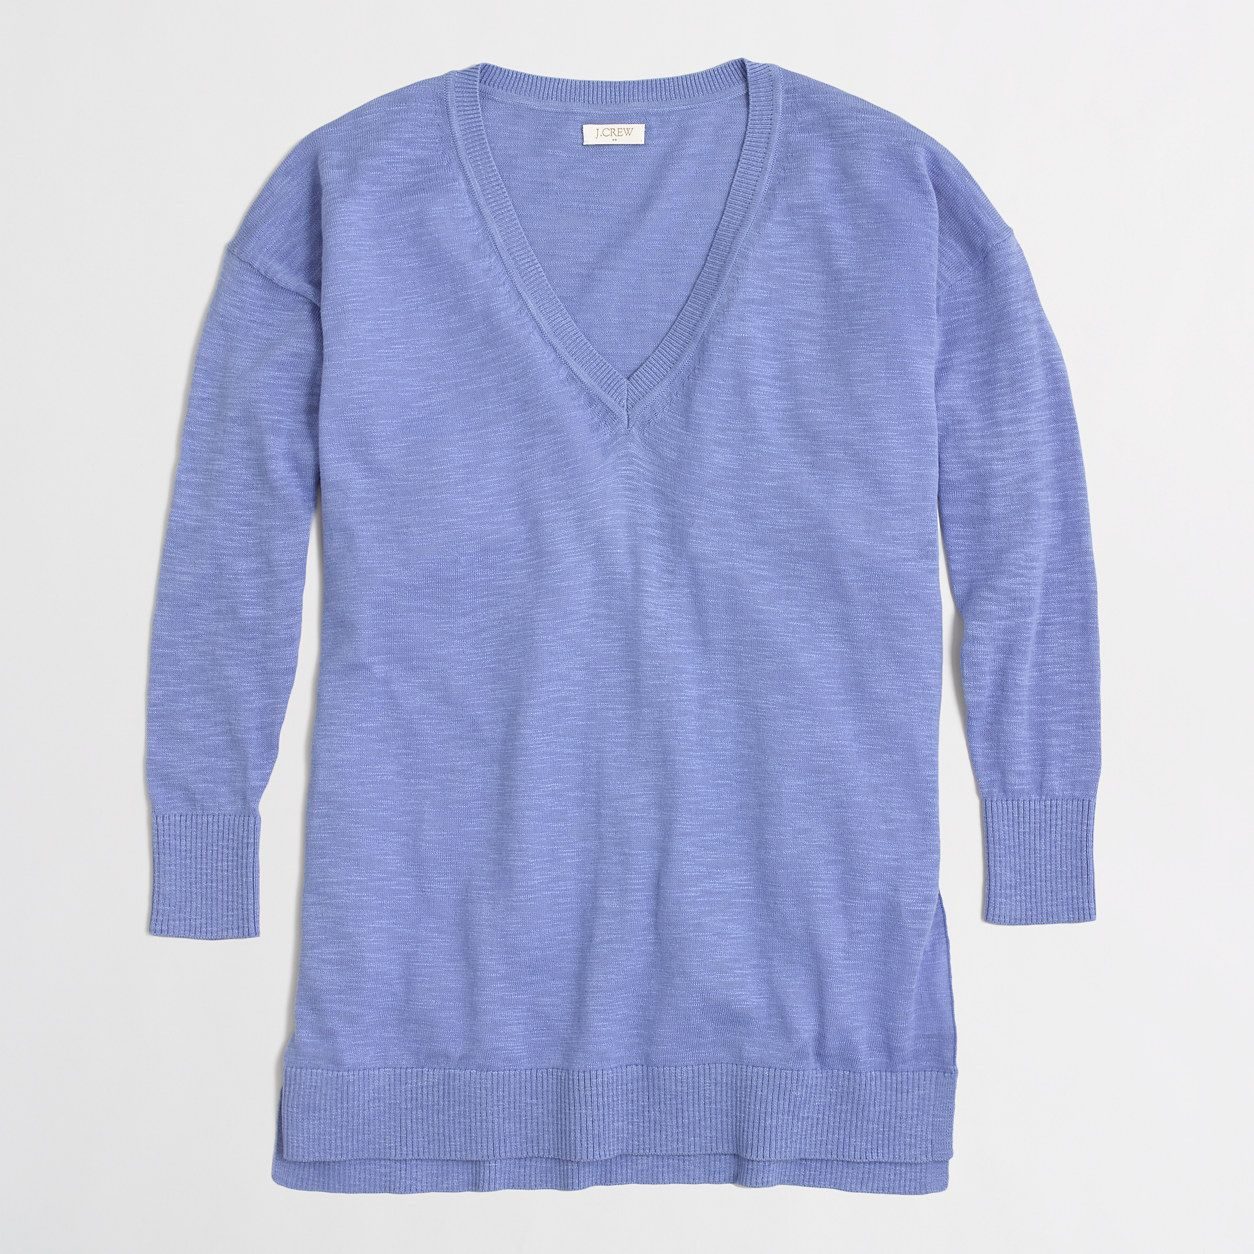 Factory slub cotton V-neck sweater   v-necks  569cd8588